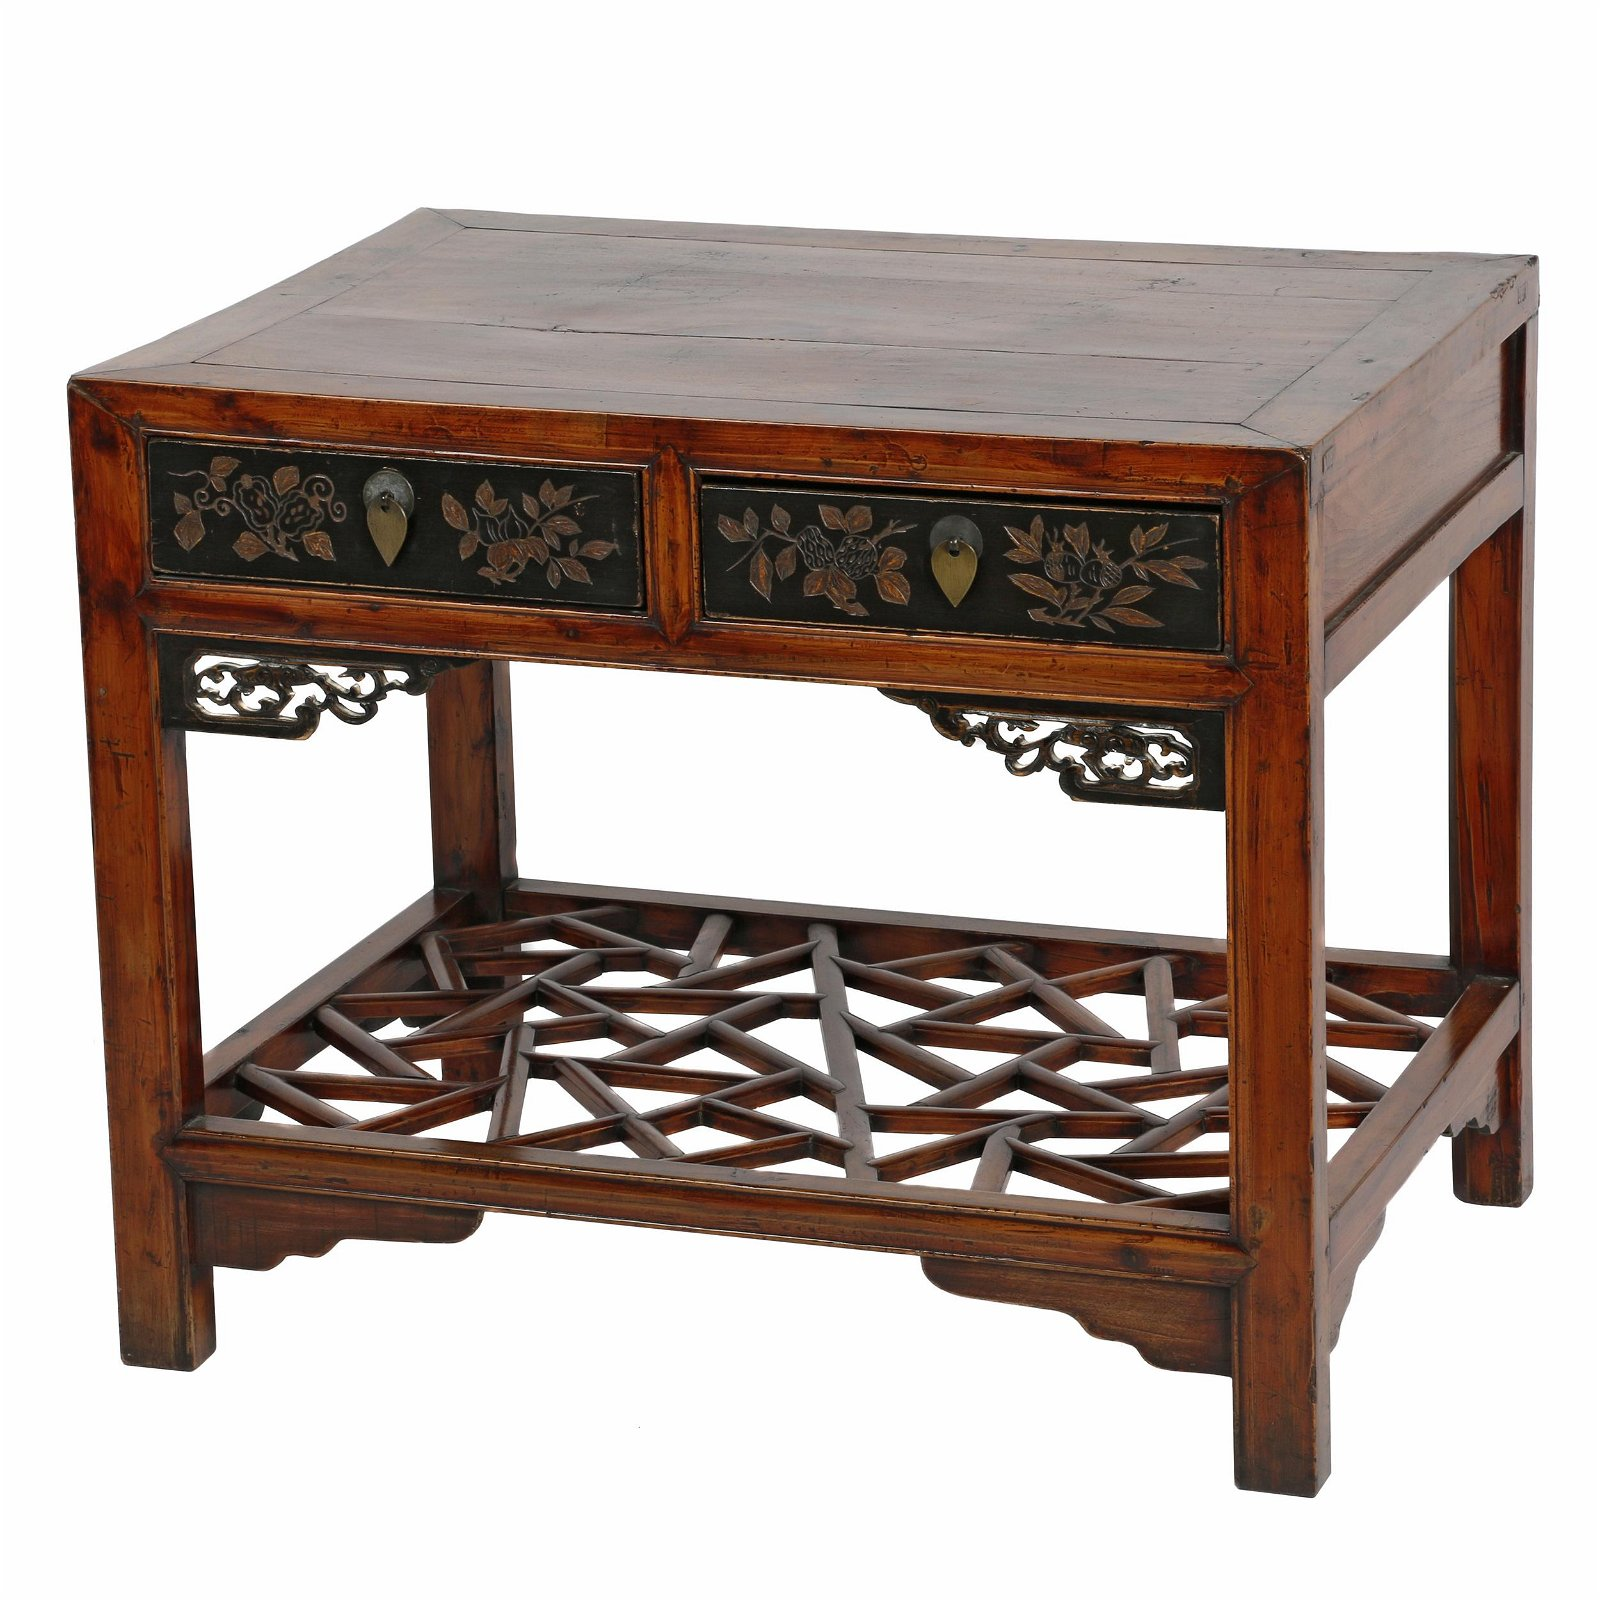 Chinese Inlaid Elm Wood and Ebonized Side Table